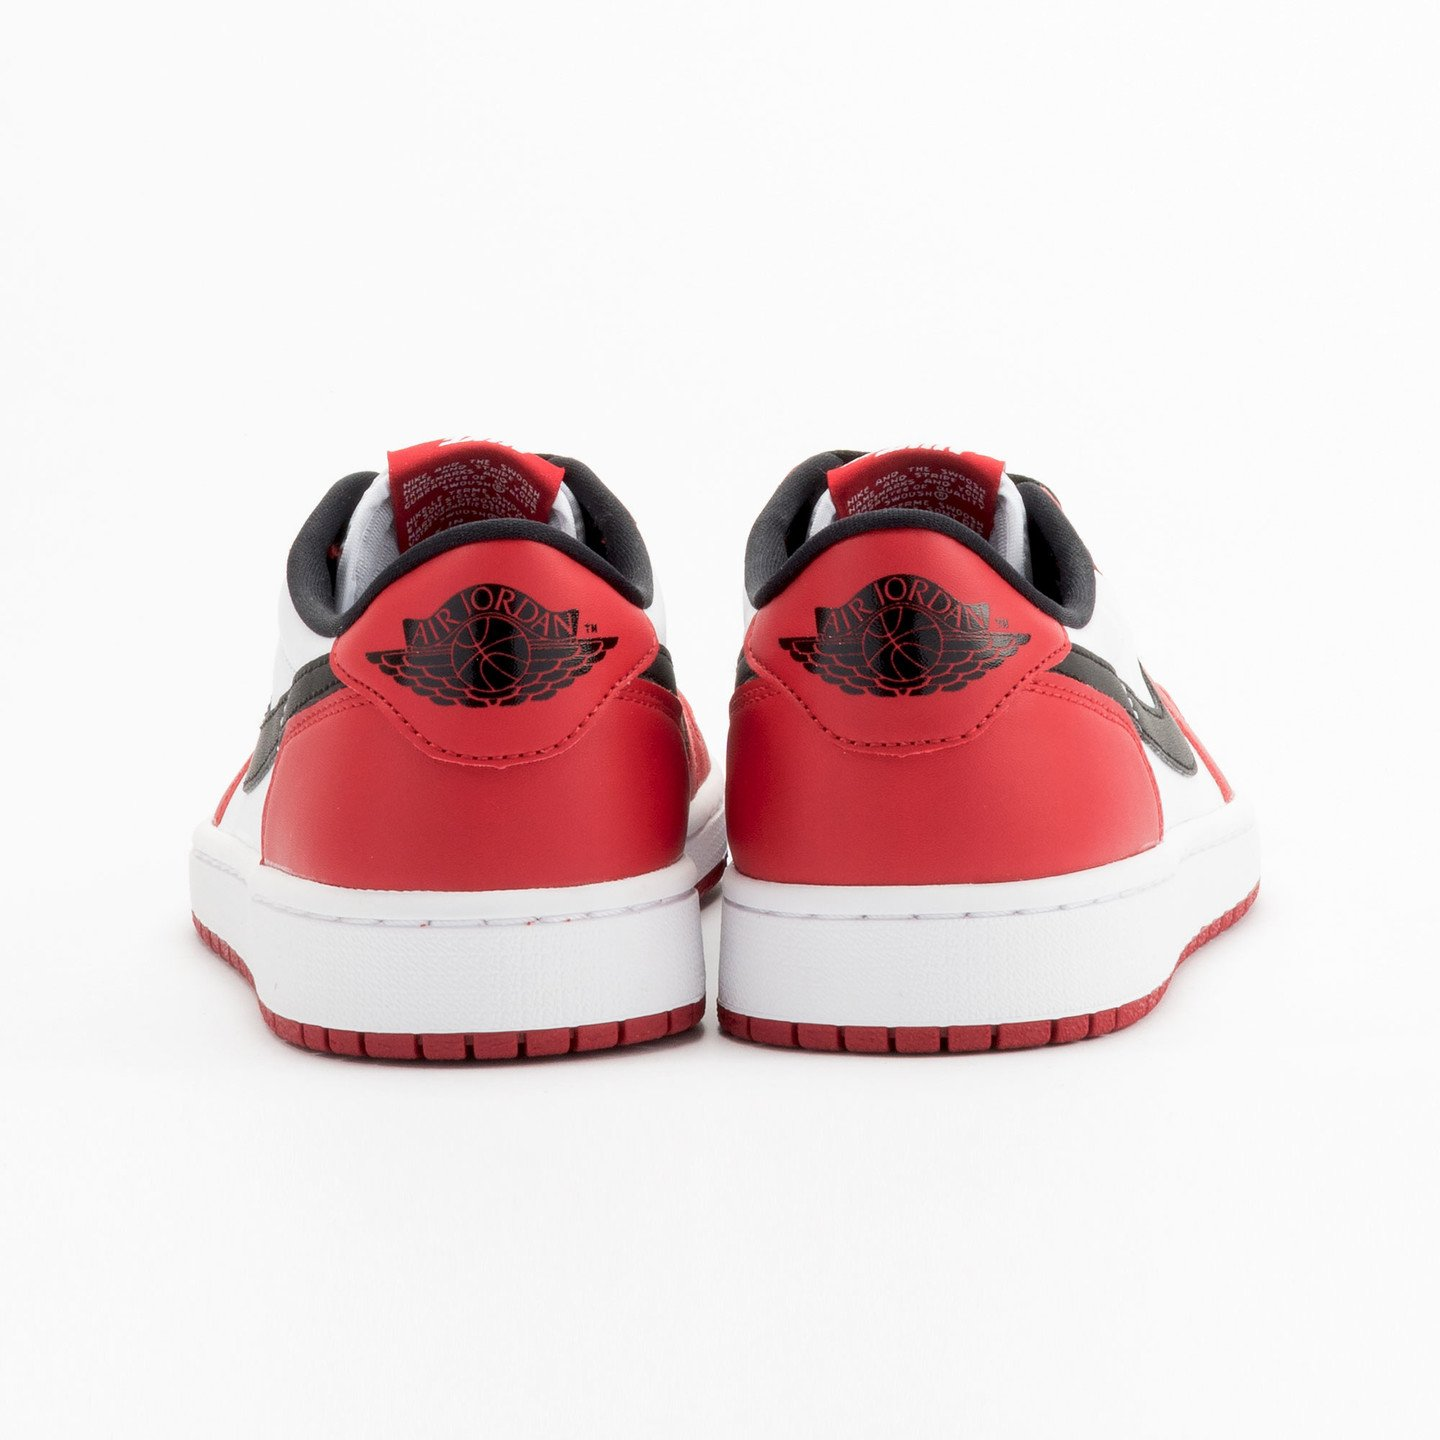 Nike Air Jordan 1 Retro Low OG 'Chicago' Varsity Red / Black / White 705329-600-47.5